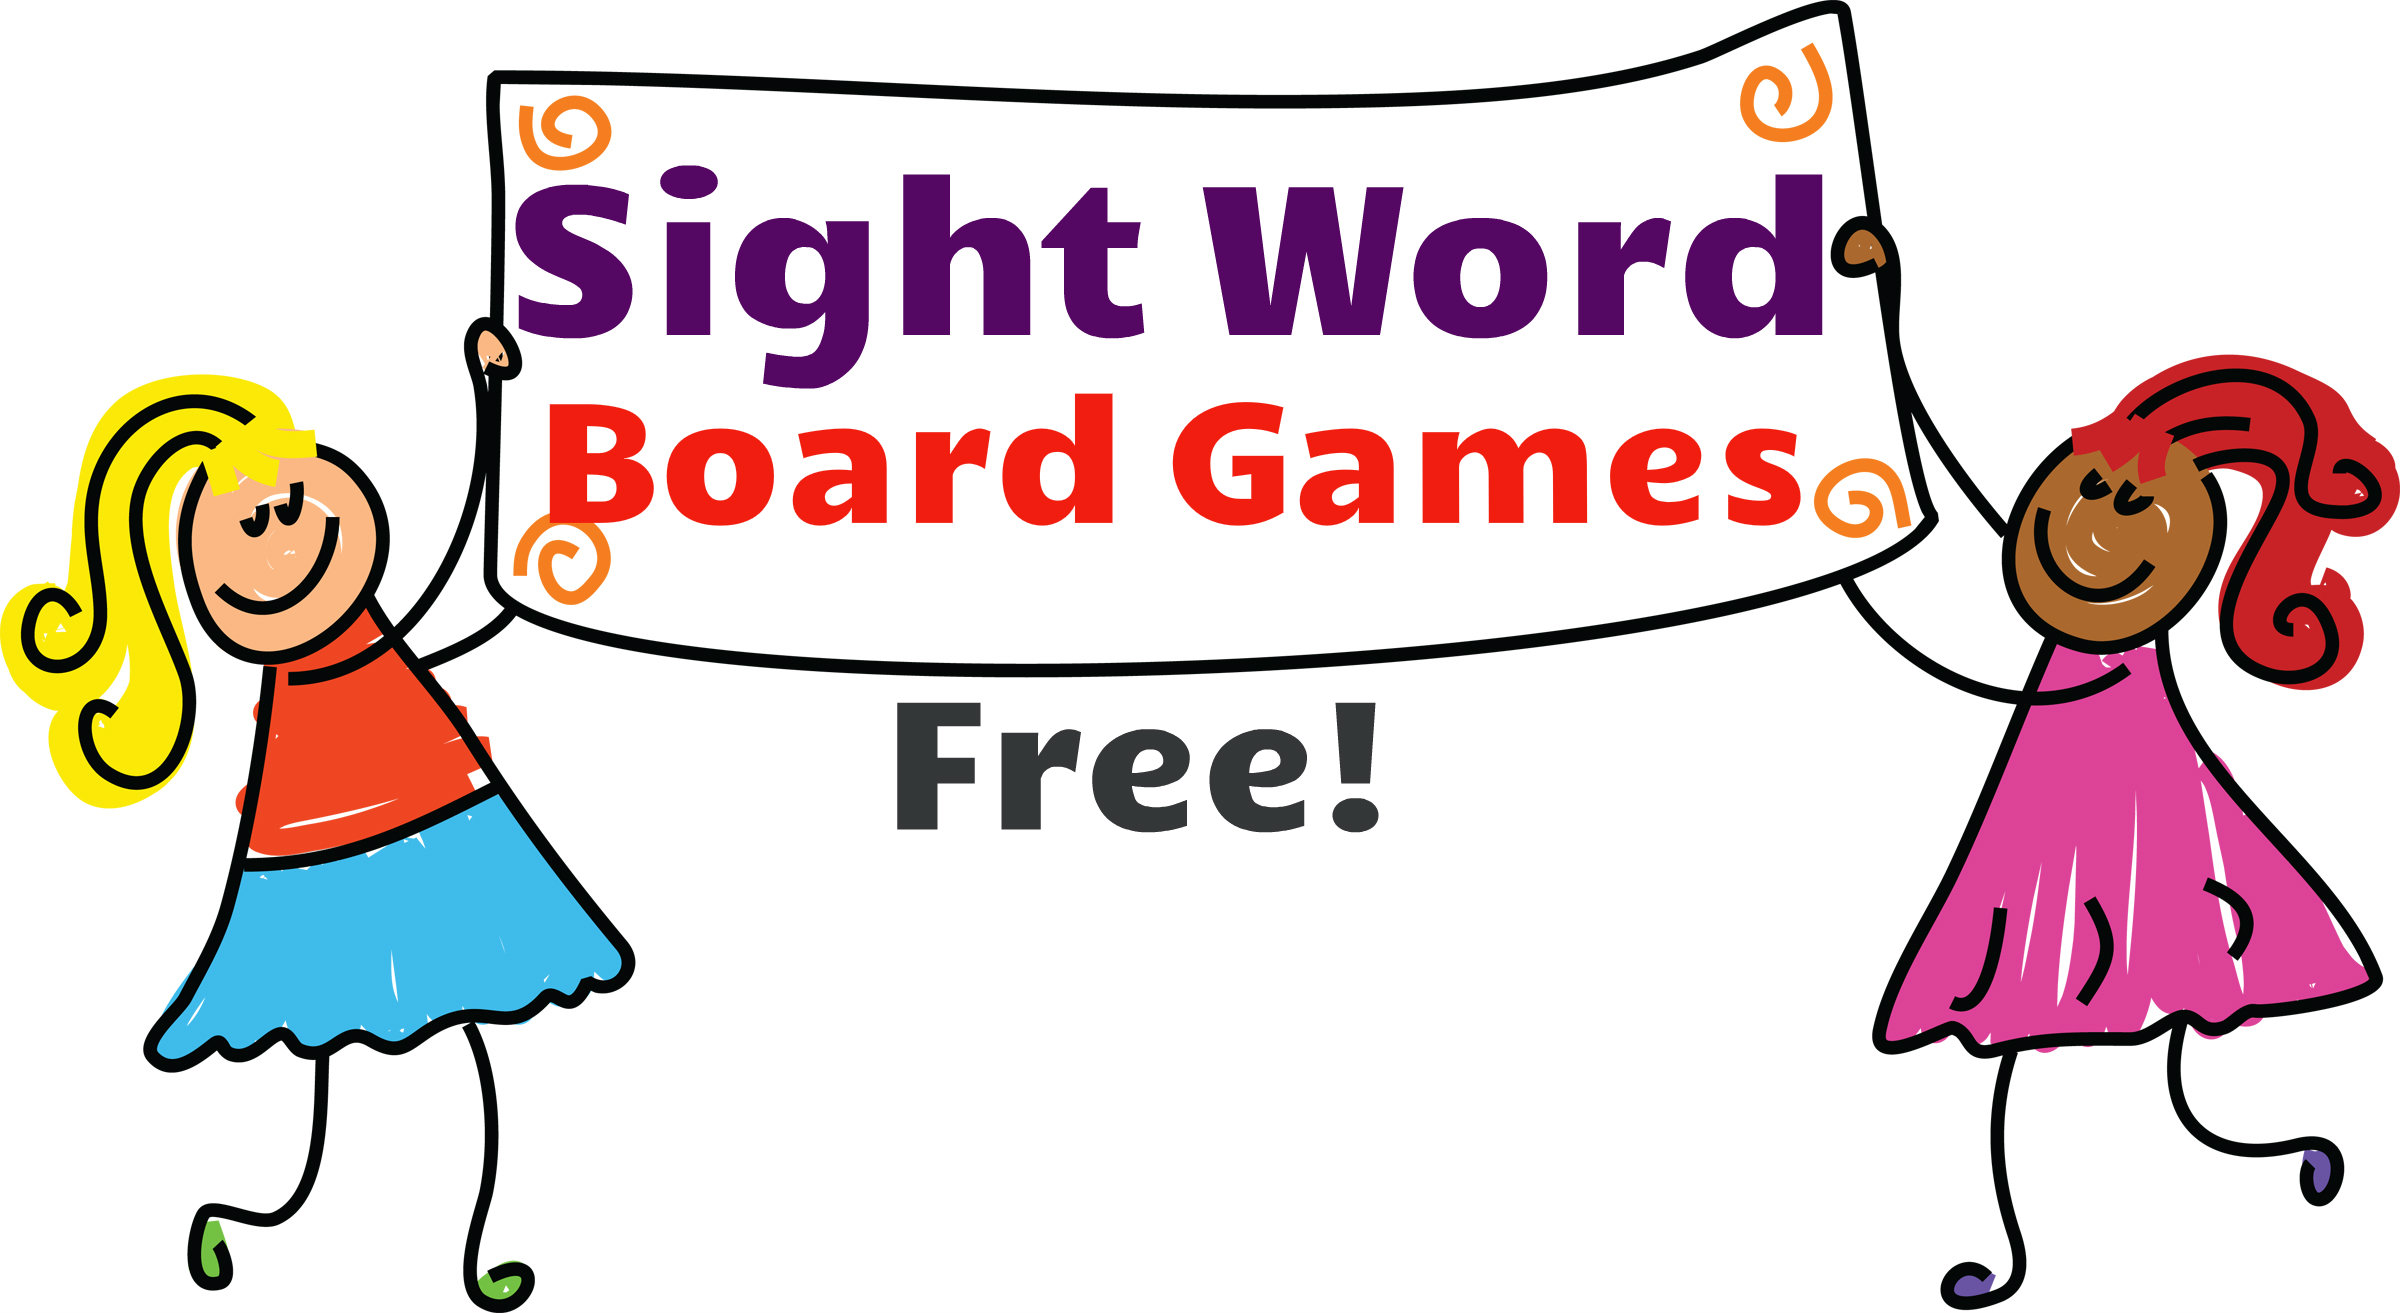 Sight Words Clipart Free Sight Words Board Games